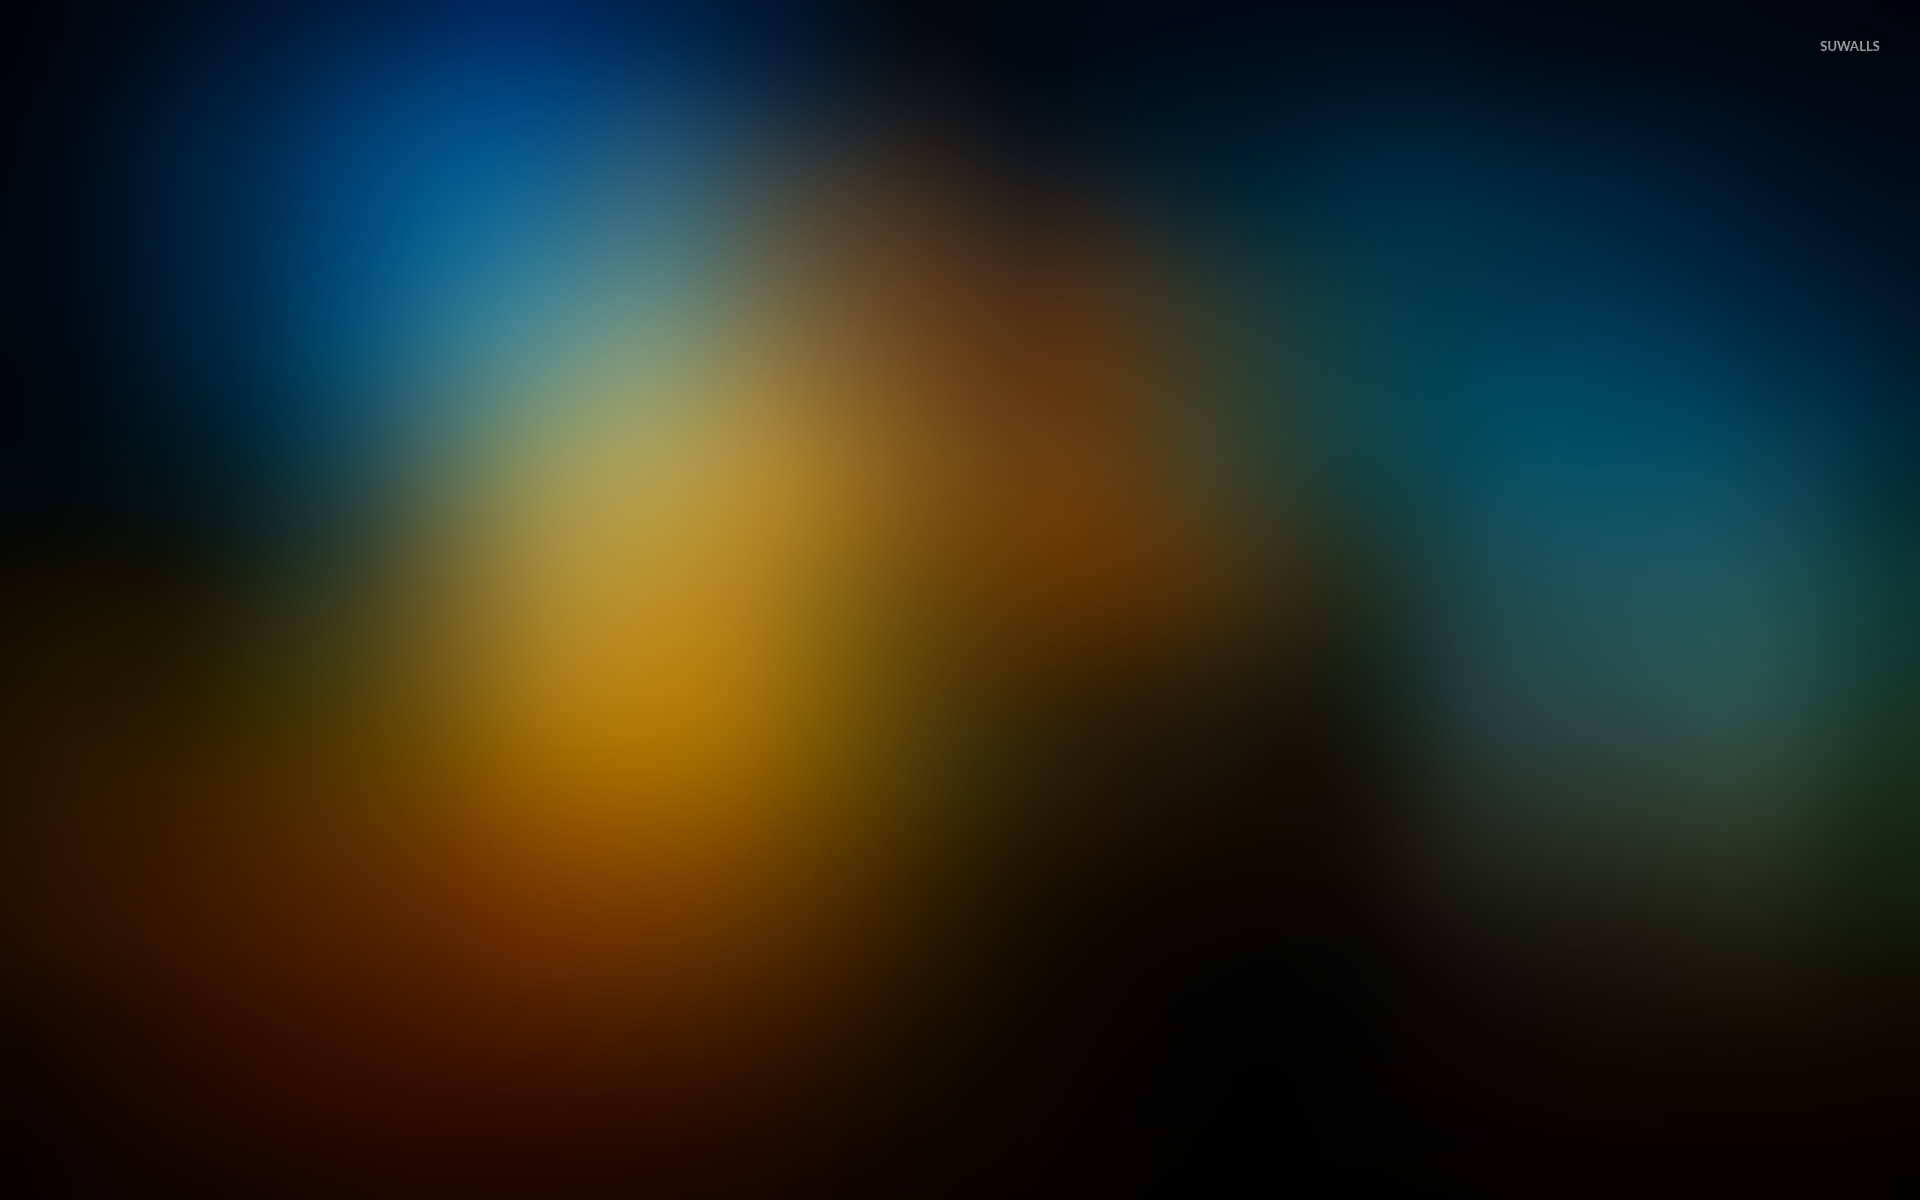 dark blur wallpaper - abstract wallpapers - #26947